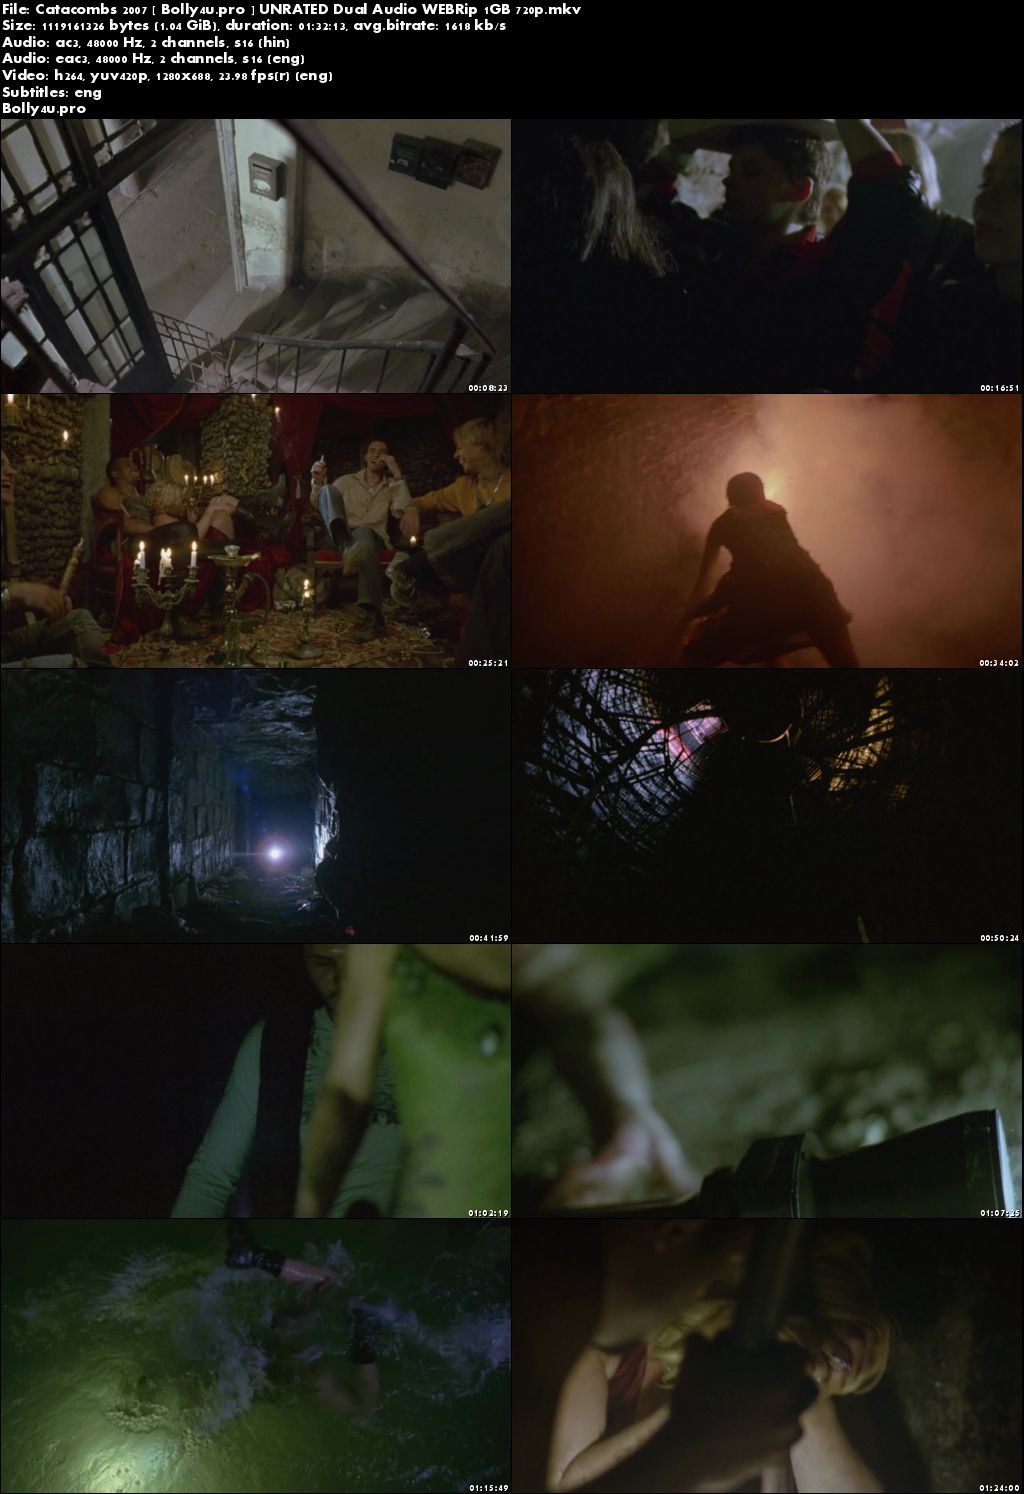 Catacombs 2007 WEBRip 450MB UNRATED Hindi Dual Audio 480p ESub Download